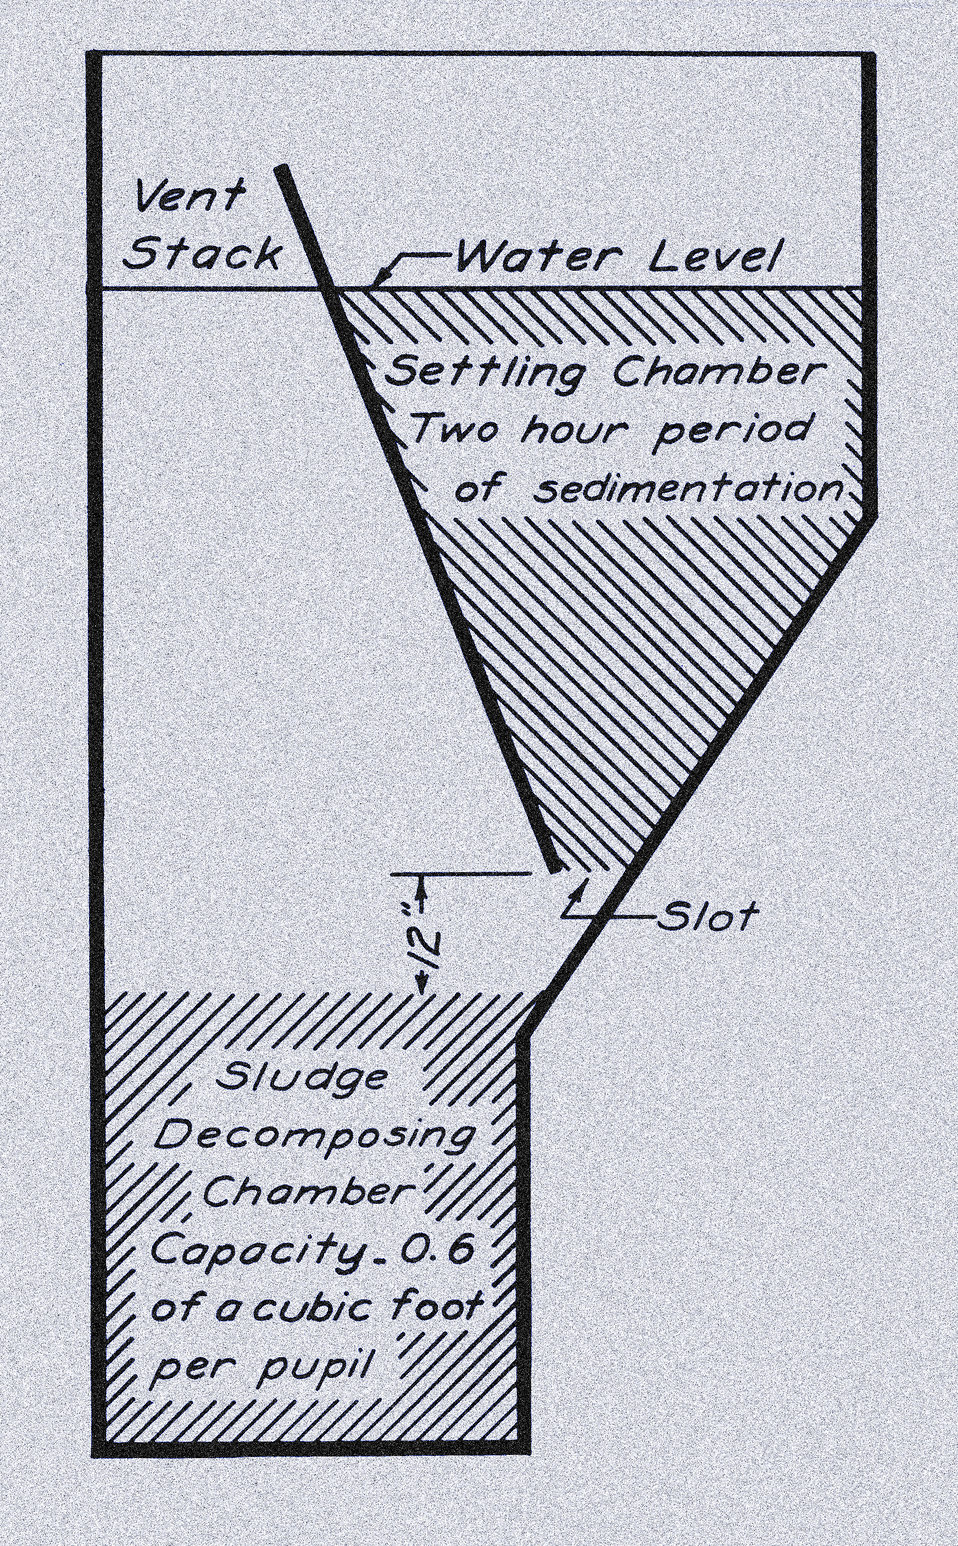 This historic diagram, which had been digitally enhanced and colorized, depicted an Imhoff sewage treatment tank from a cross-sectional pers